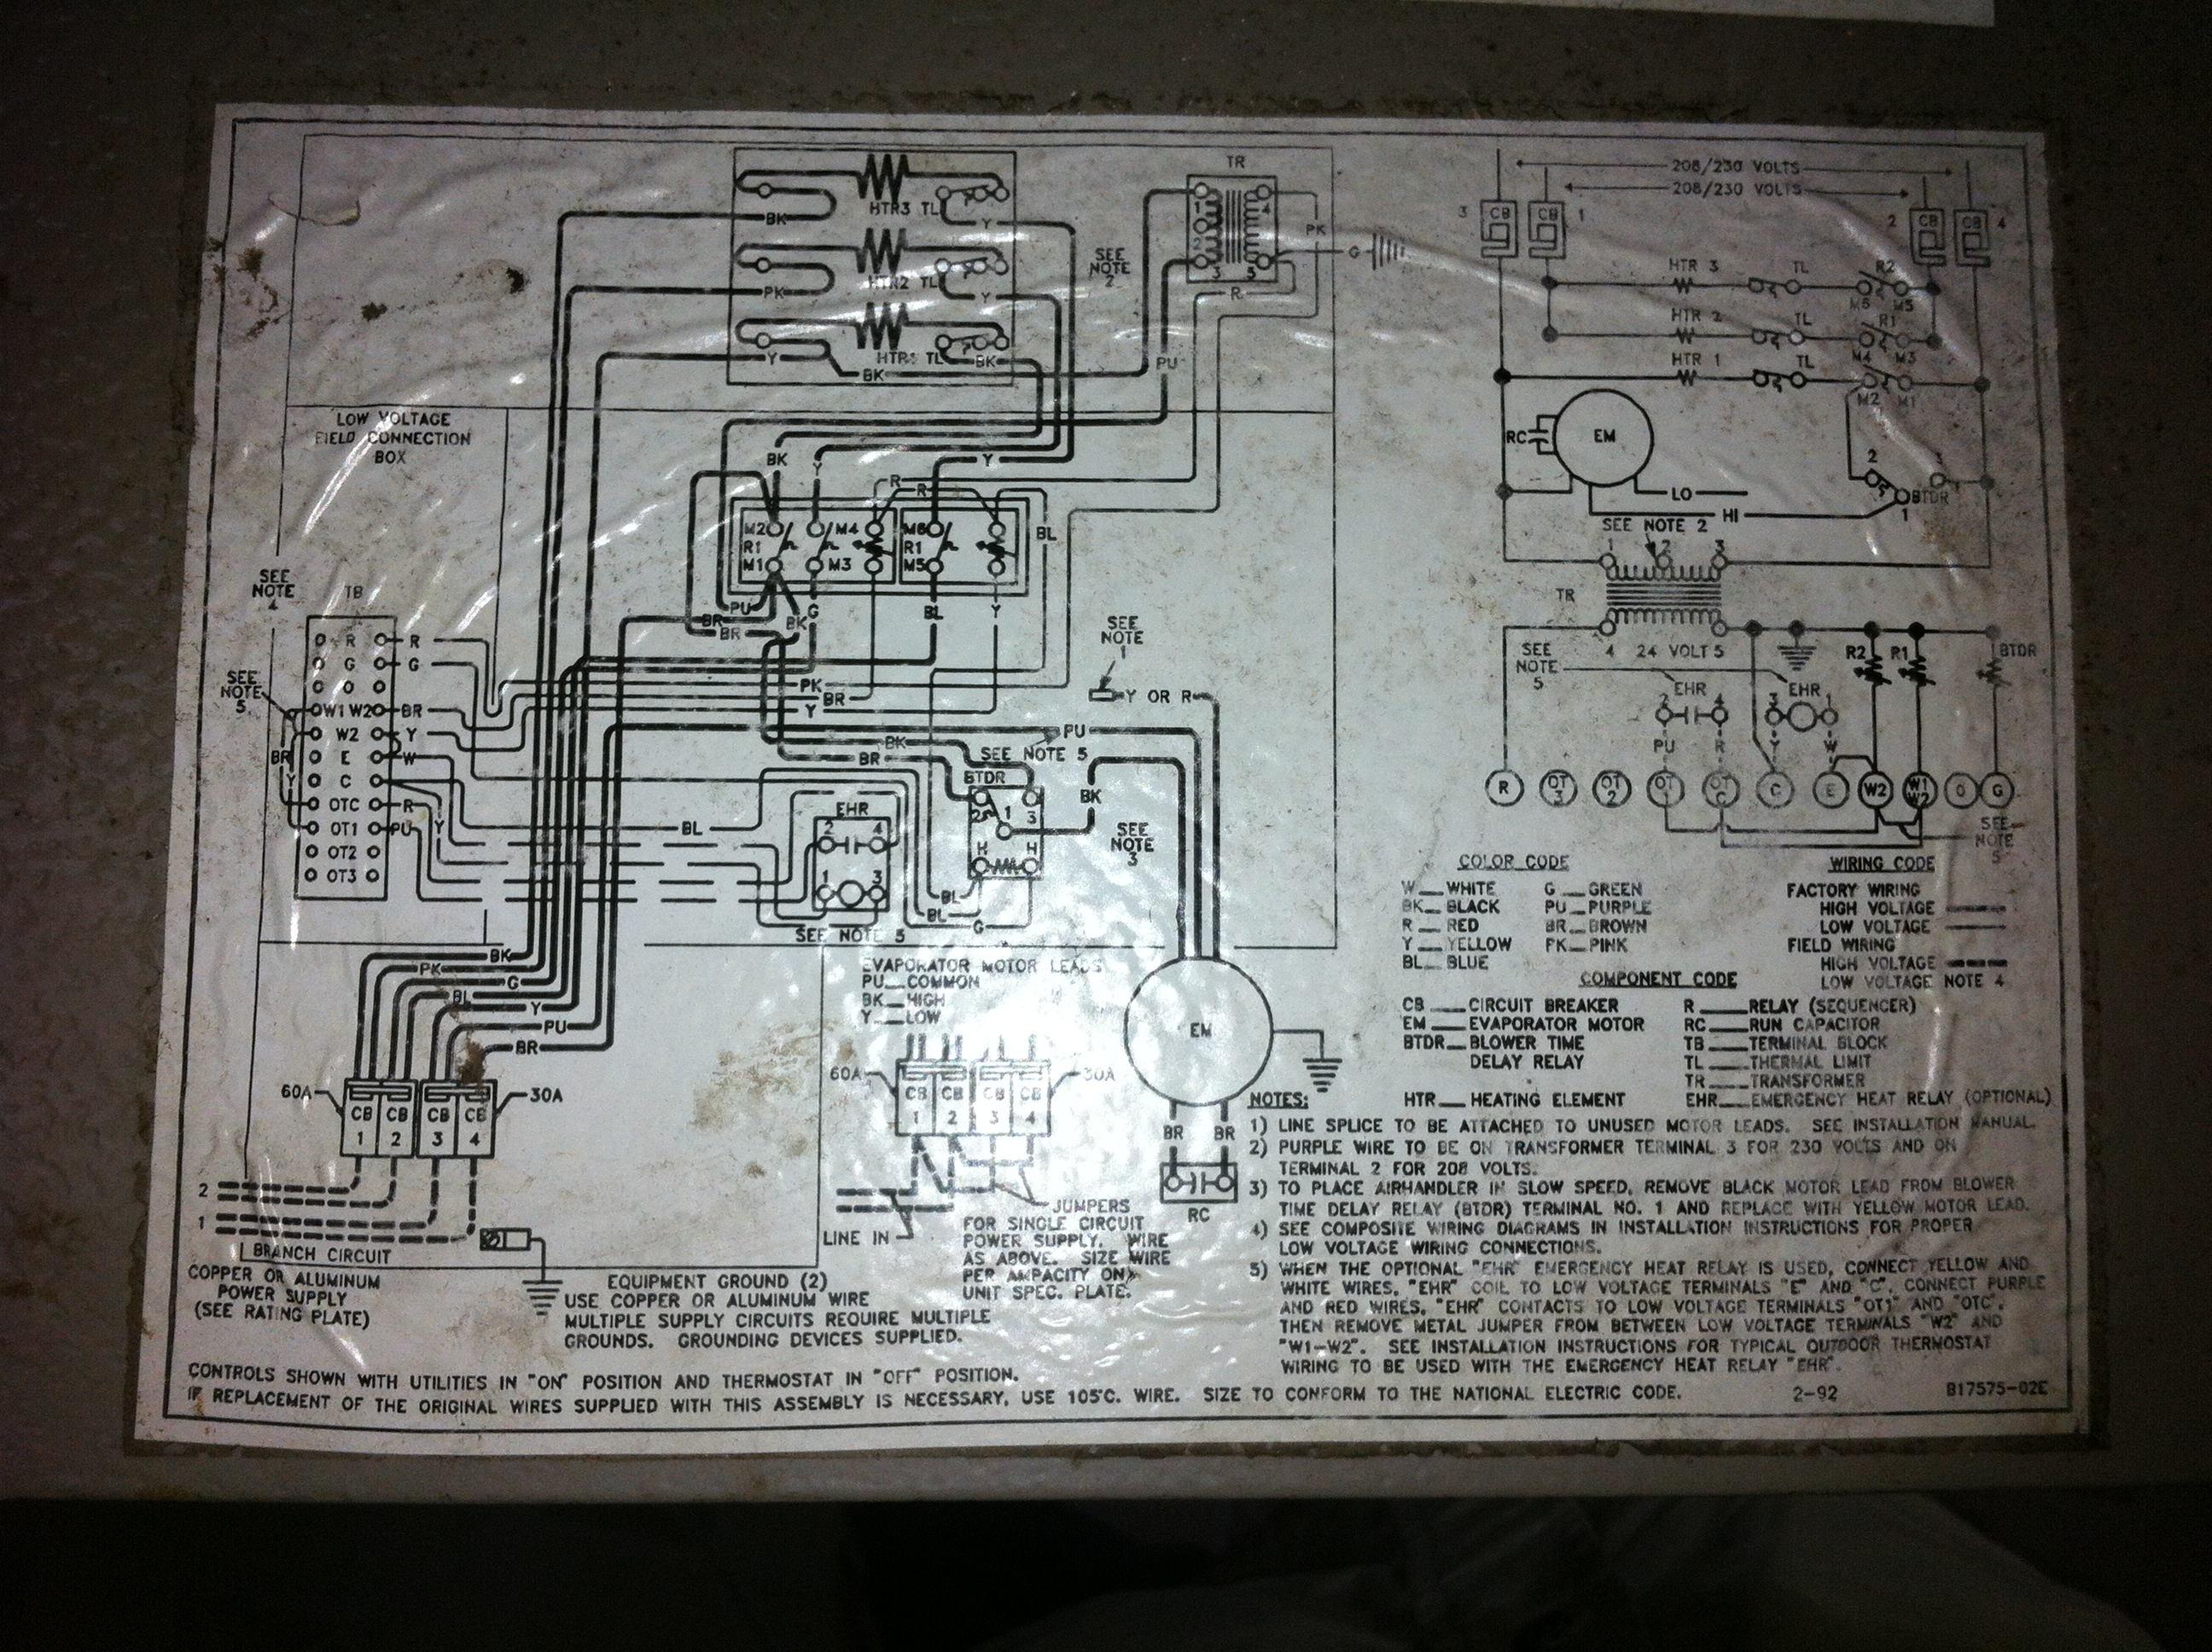 General Electric Furnace Wiring Diagram 39 Images Understanding Diagrams Automotive Hvac 2012 04 15 010529 Img 0035 100 Rheem Pagepackage